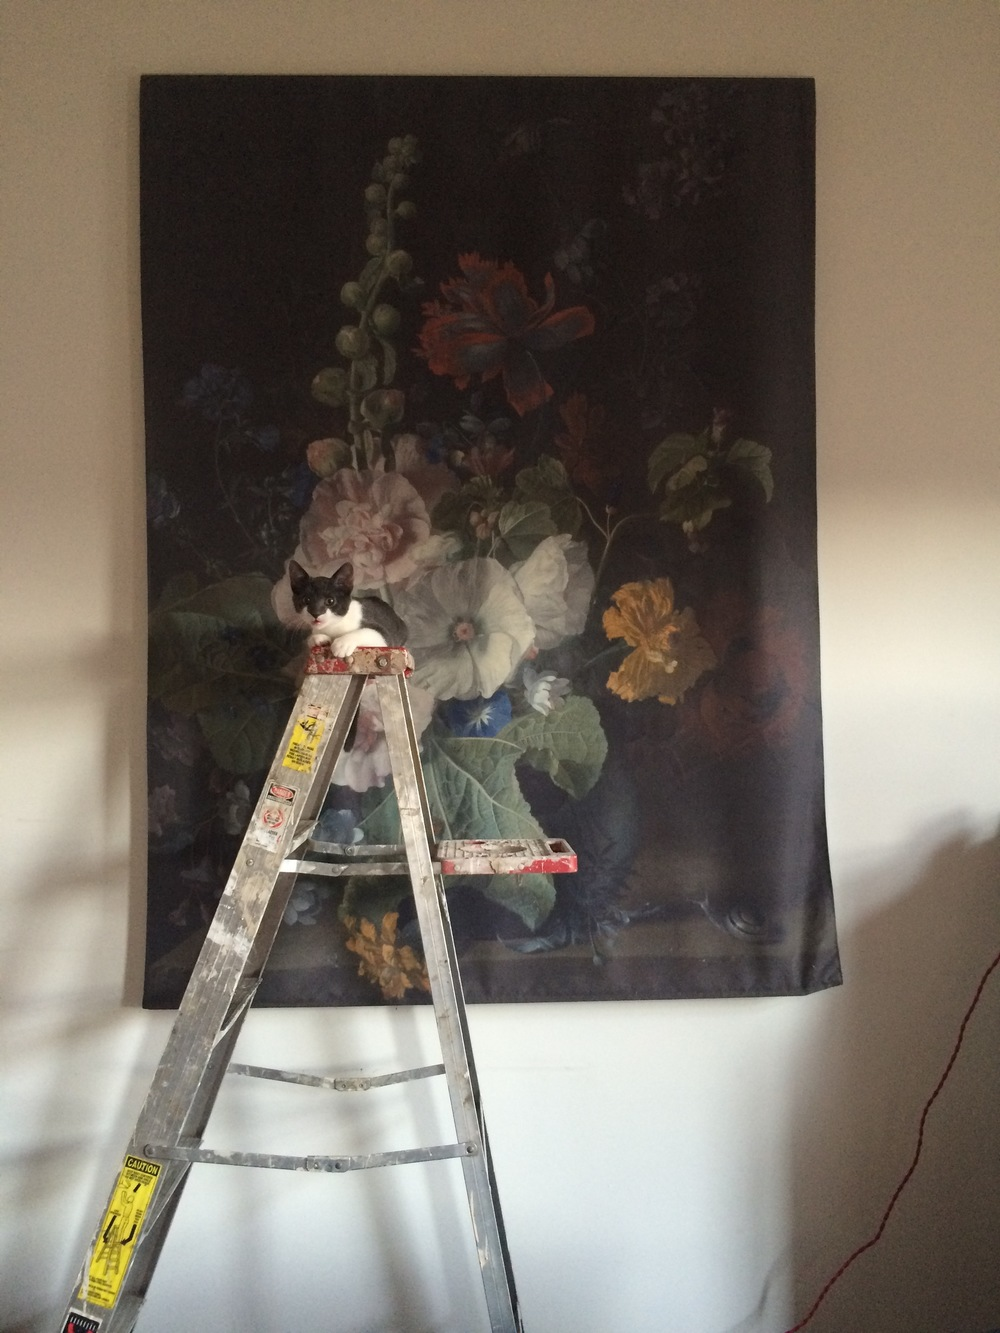 Chimichanga doing her best to look like a Dutch master's painting. She's strangely thrilled by that ladder.